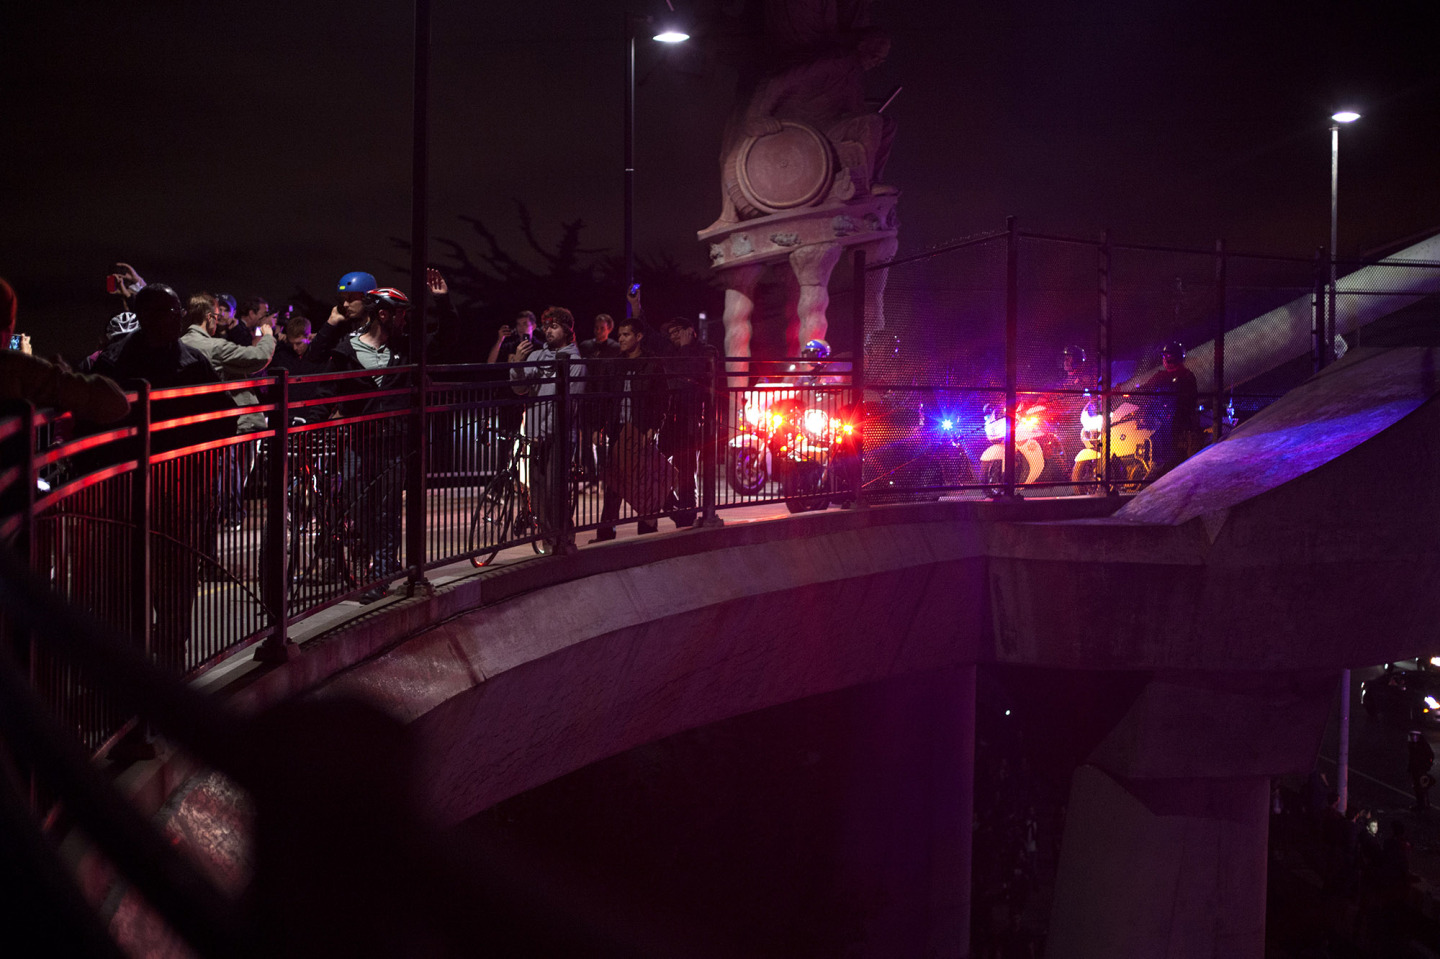 Stand off between protesters and police on I-80 pedestrian overpass. (Mark Andrew Boyer)